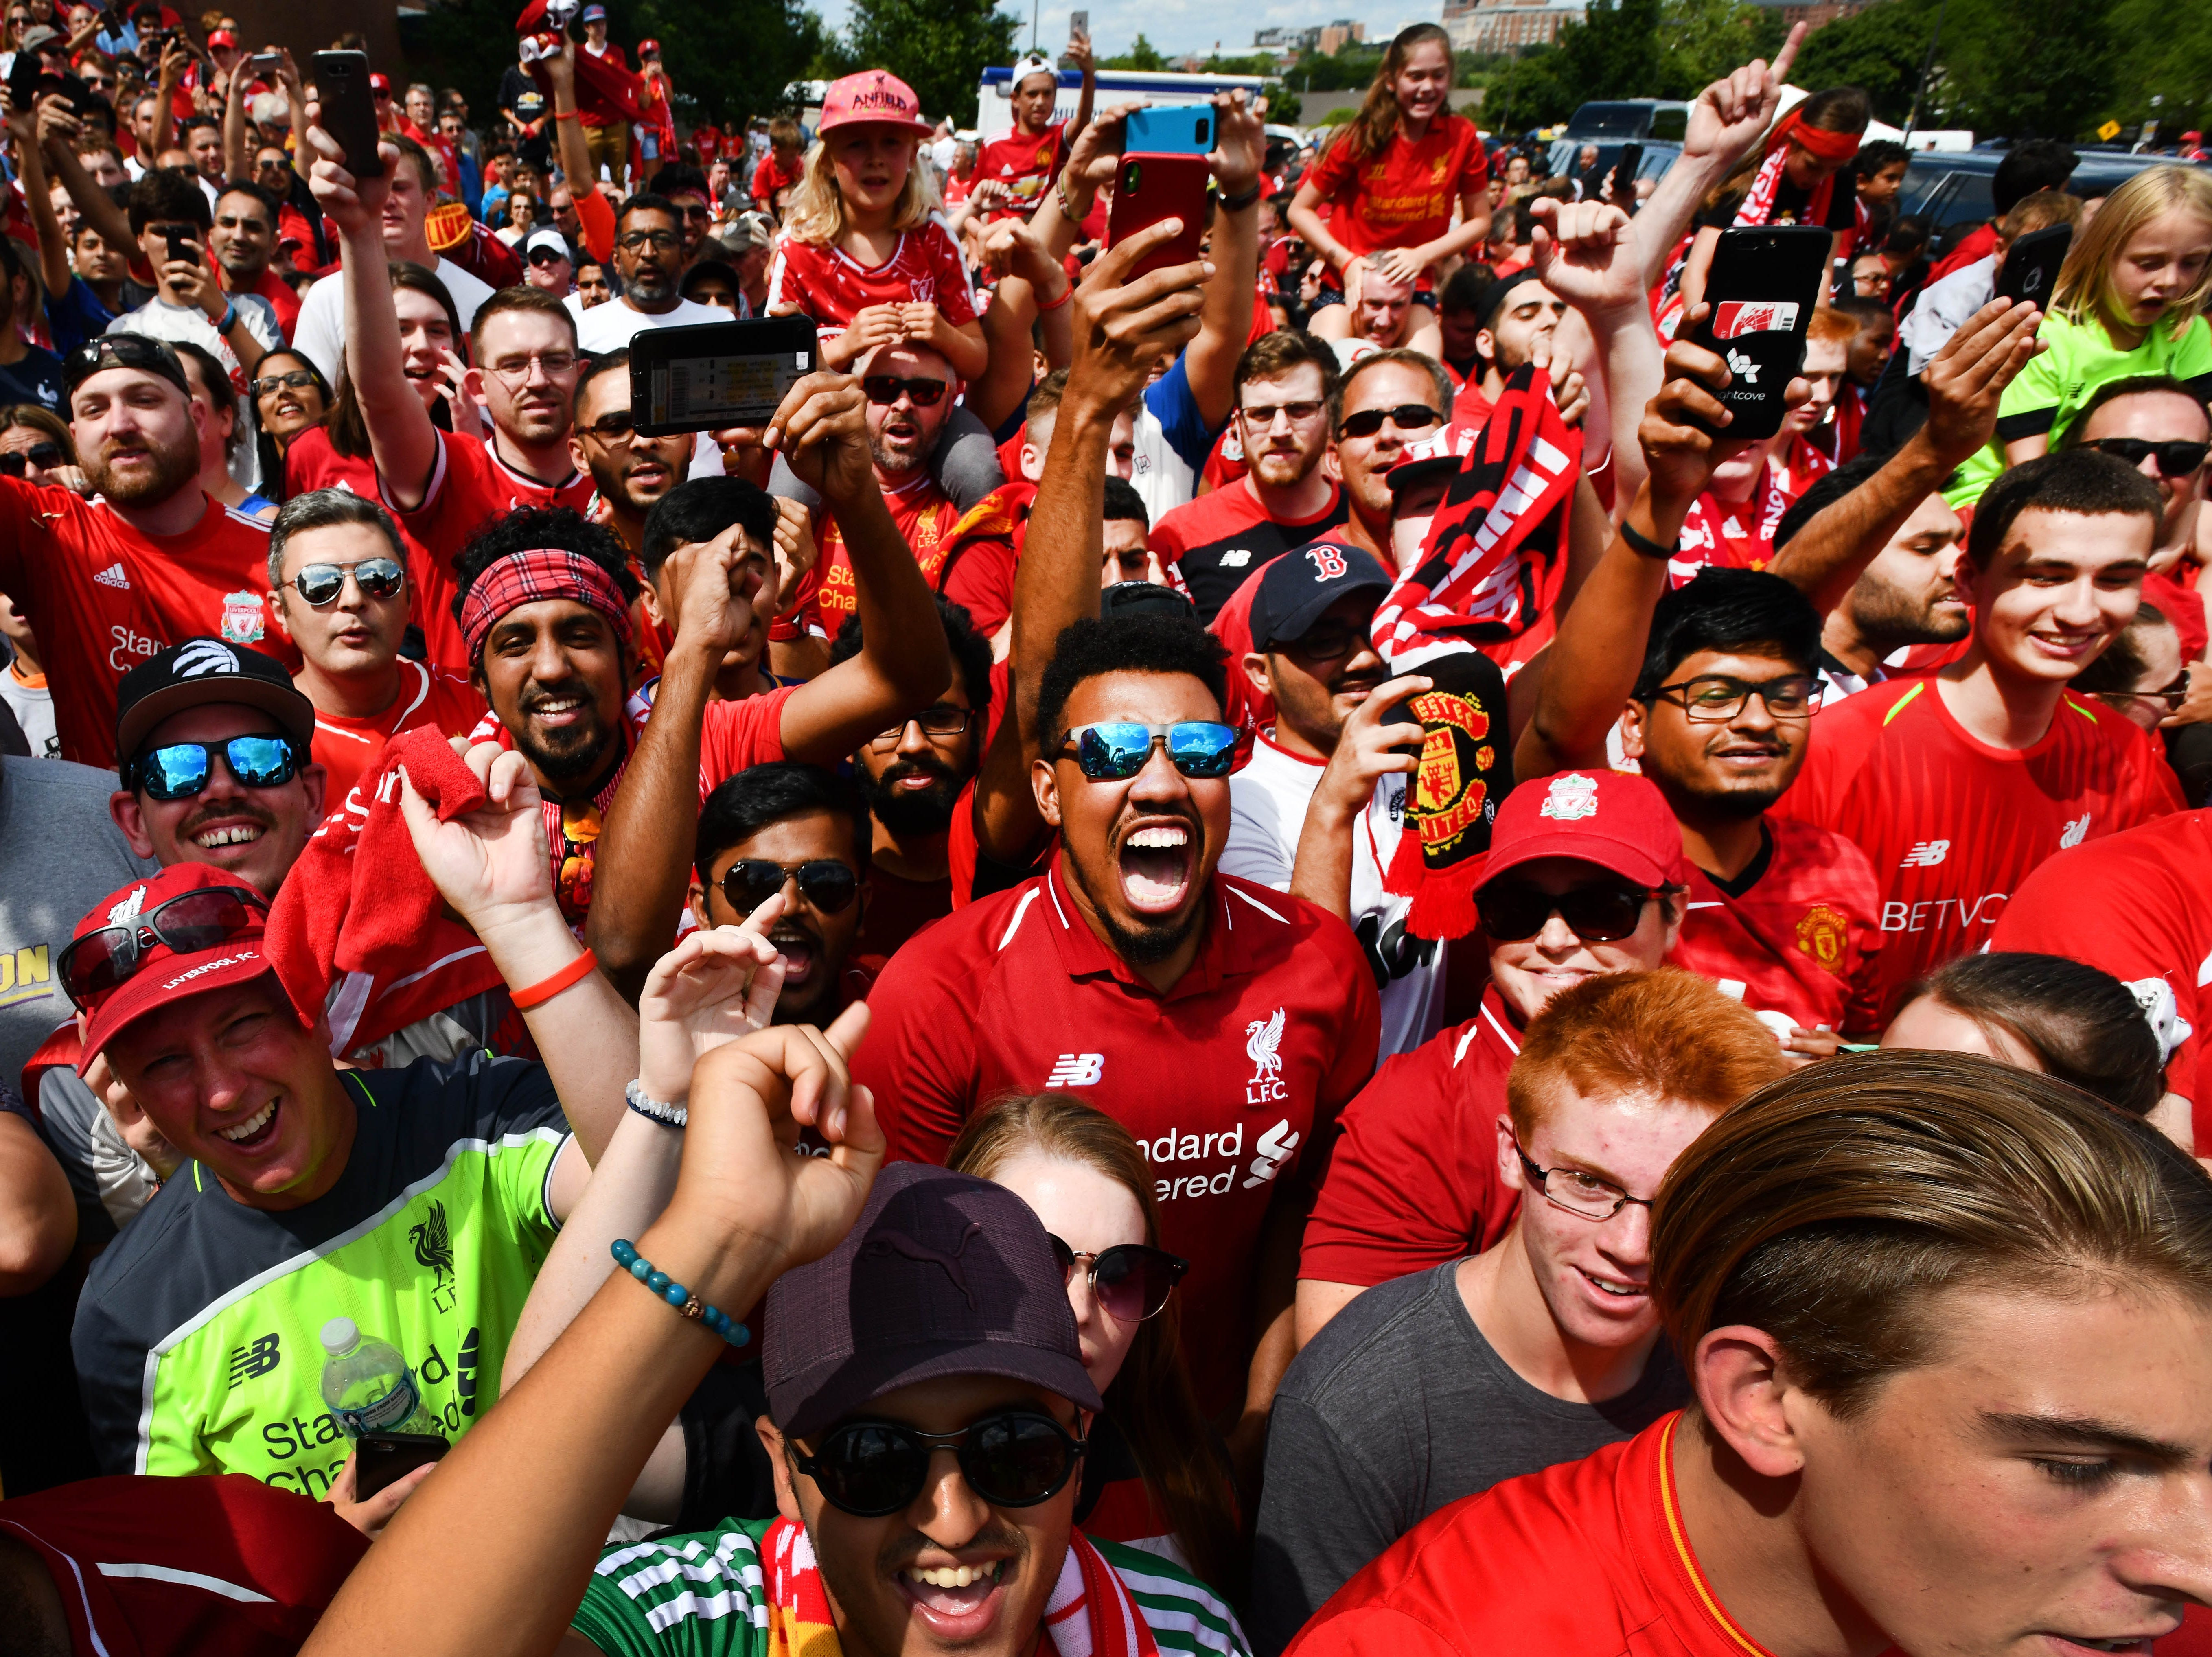 Crowds react as Manchester United and Liverpool buses arrive for the International Champions Cup game  at Michigan Stadium.